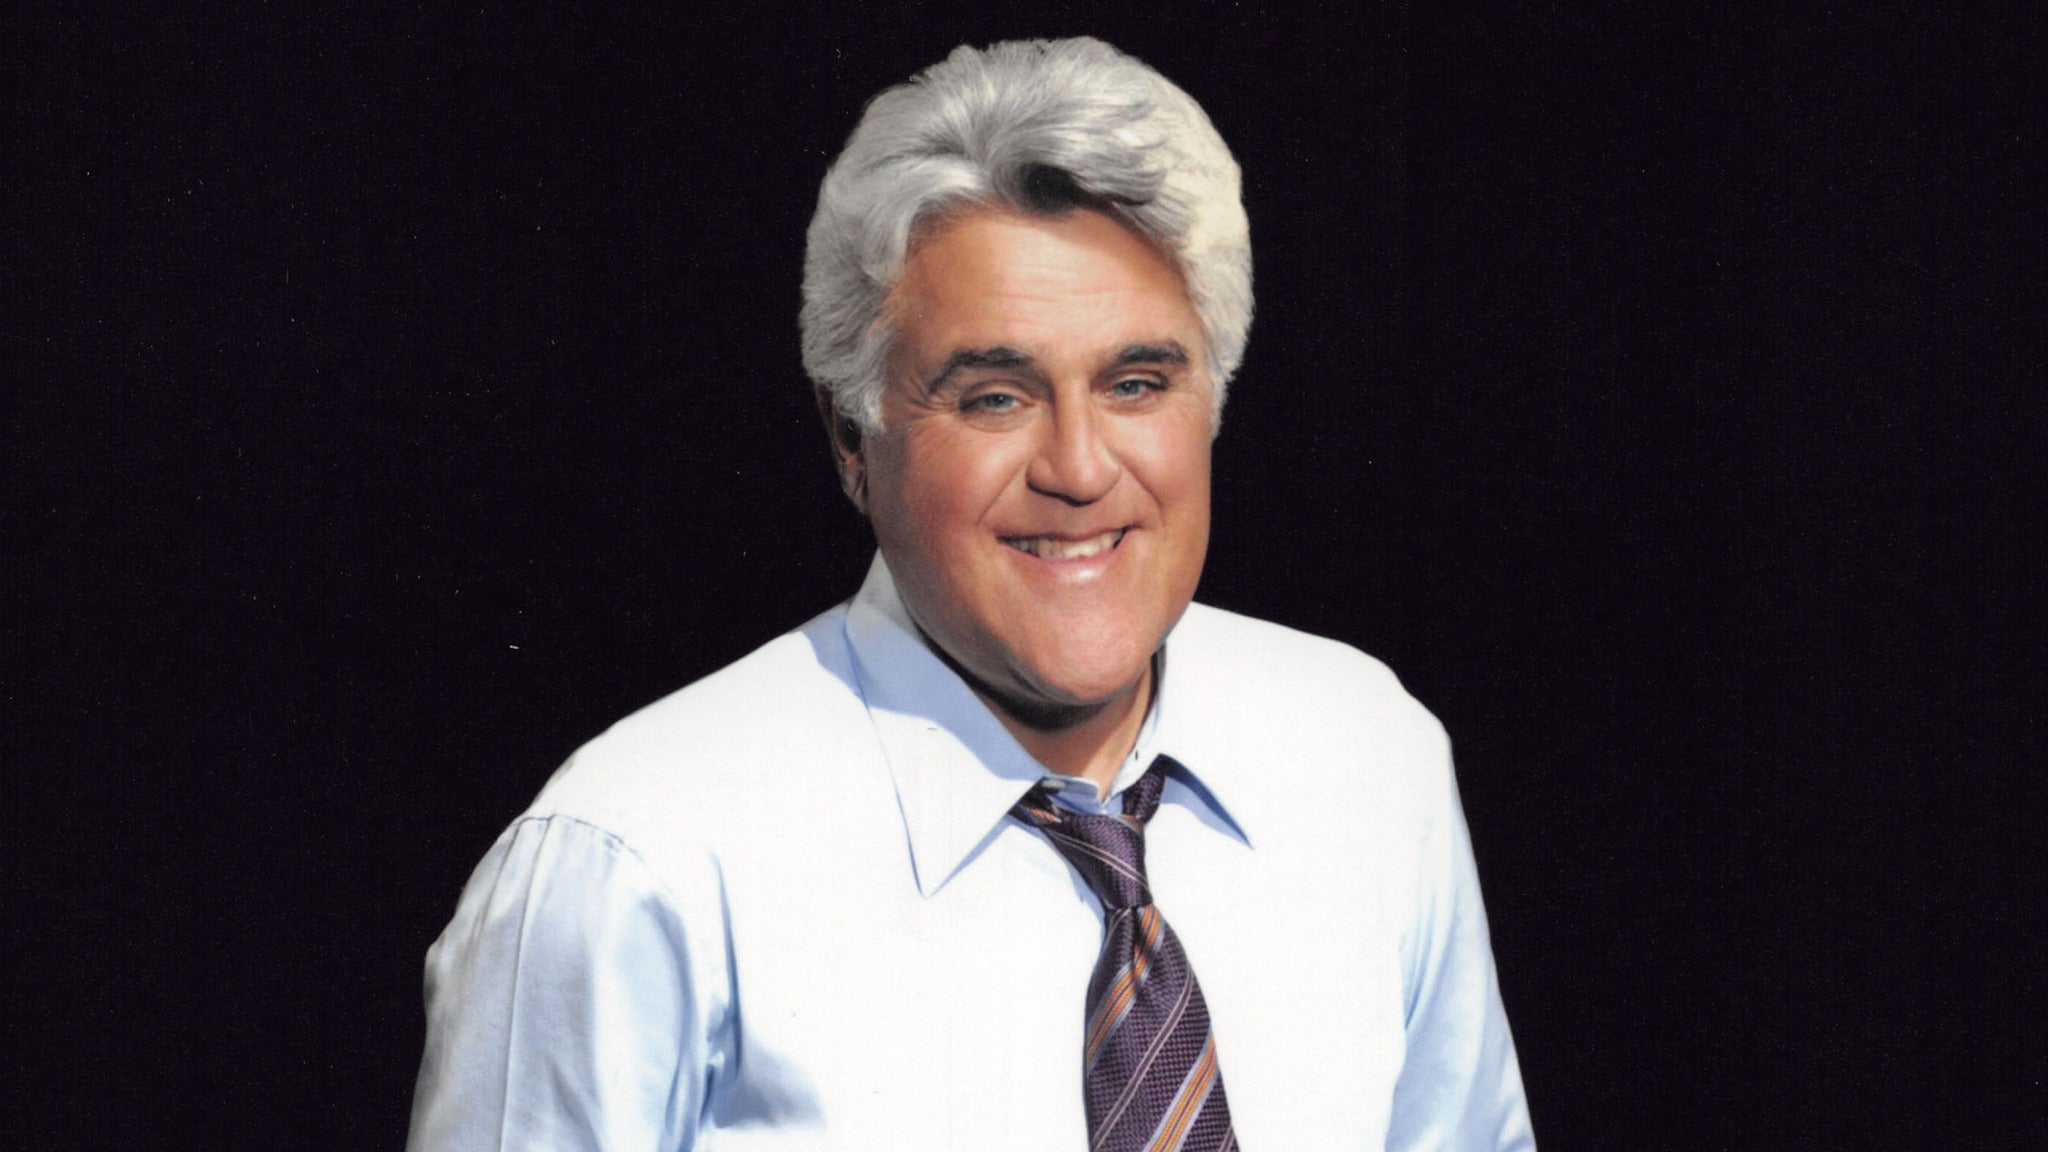 Jay Leno at Capitol Center for the Arts - NH